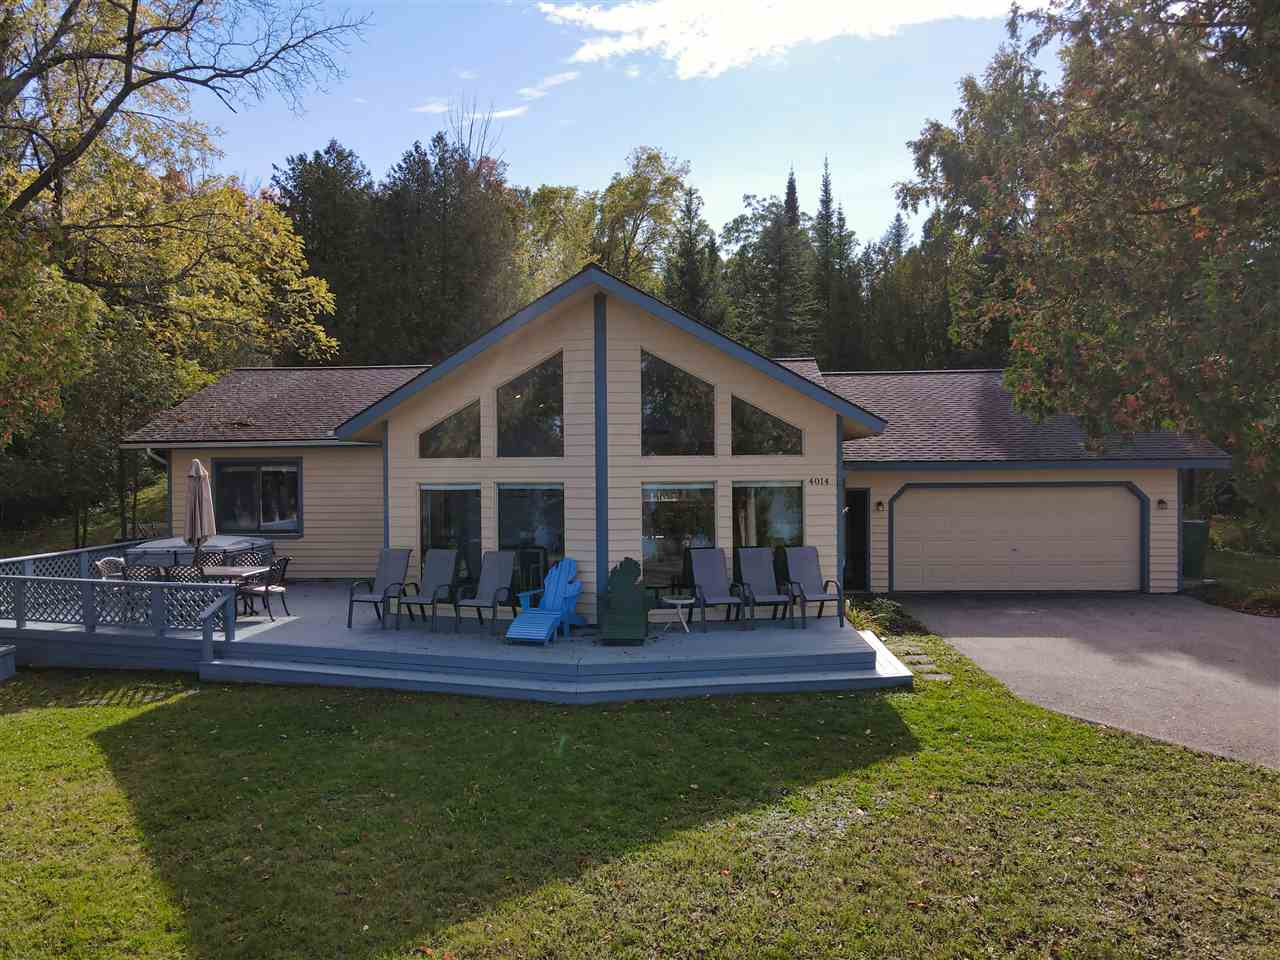 MLS 463707 - 4014  Lakeshore Dr. , Boyne City, MI